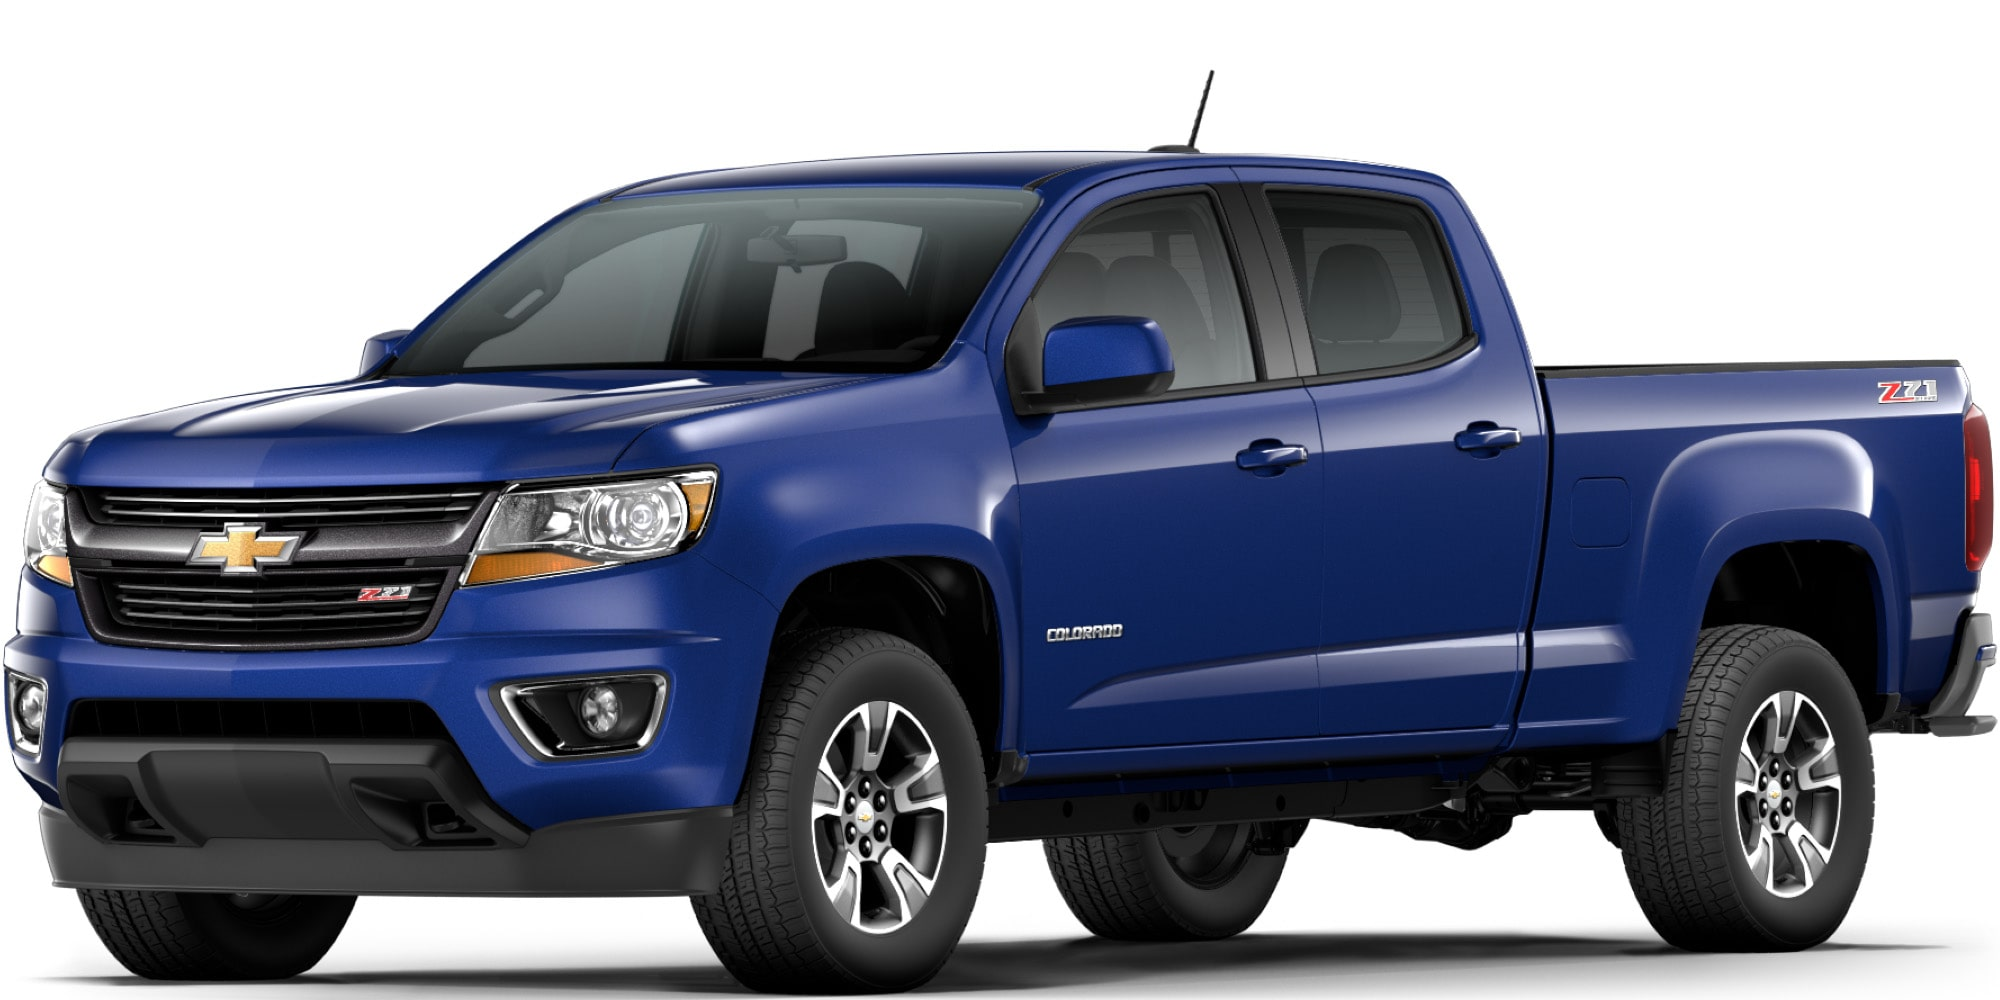 2017 chevrolet colorado sacramento. Black Bedroom Furniture Sets. Home Design Ideas